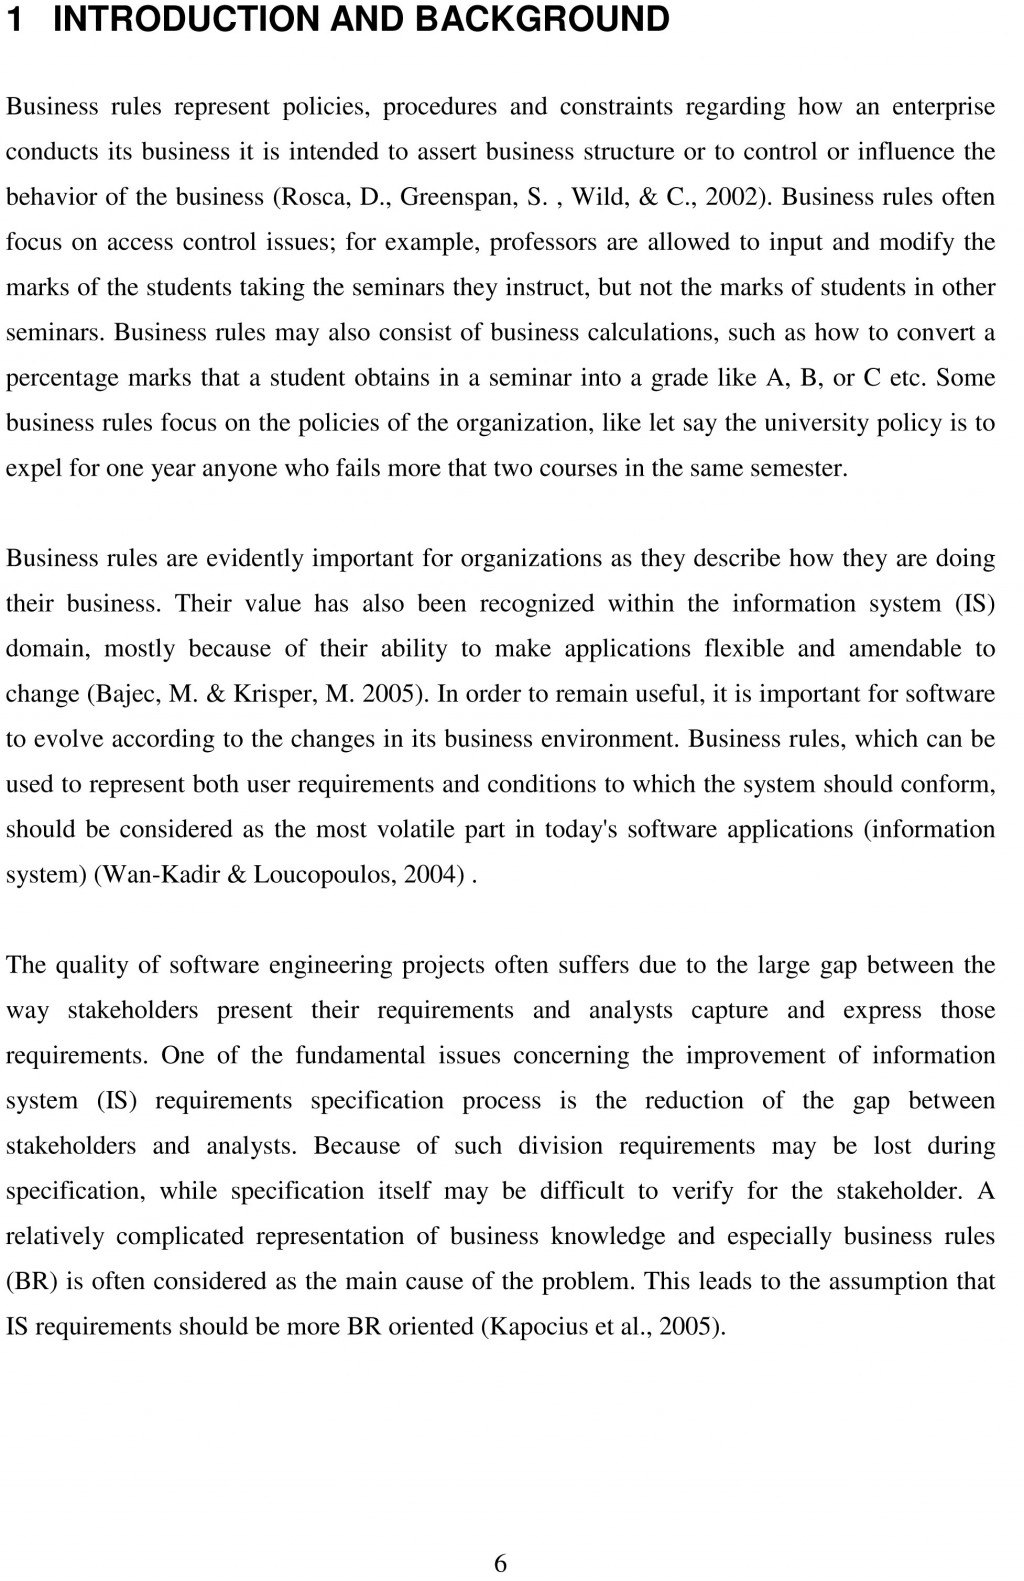 006 Research Paper Literary Ideas Quality Thesis Free Impressive Analysis Large